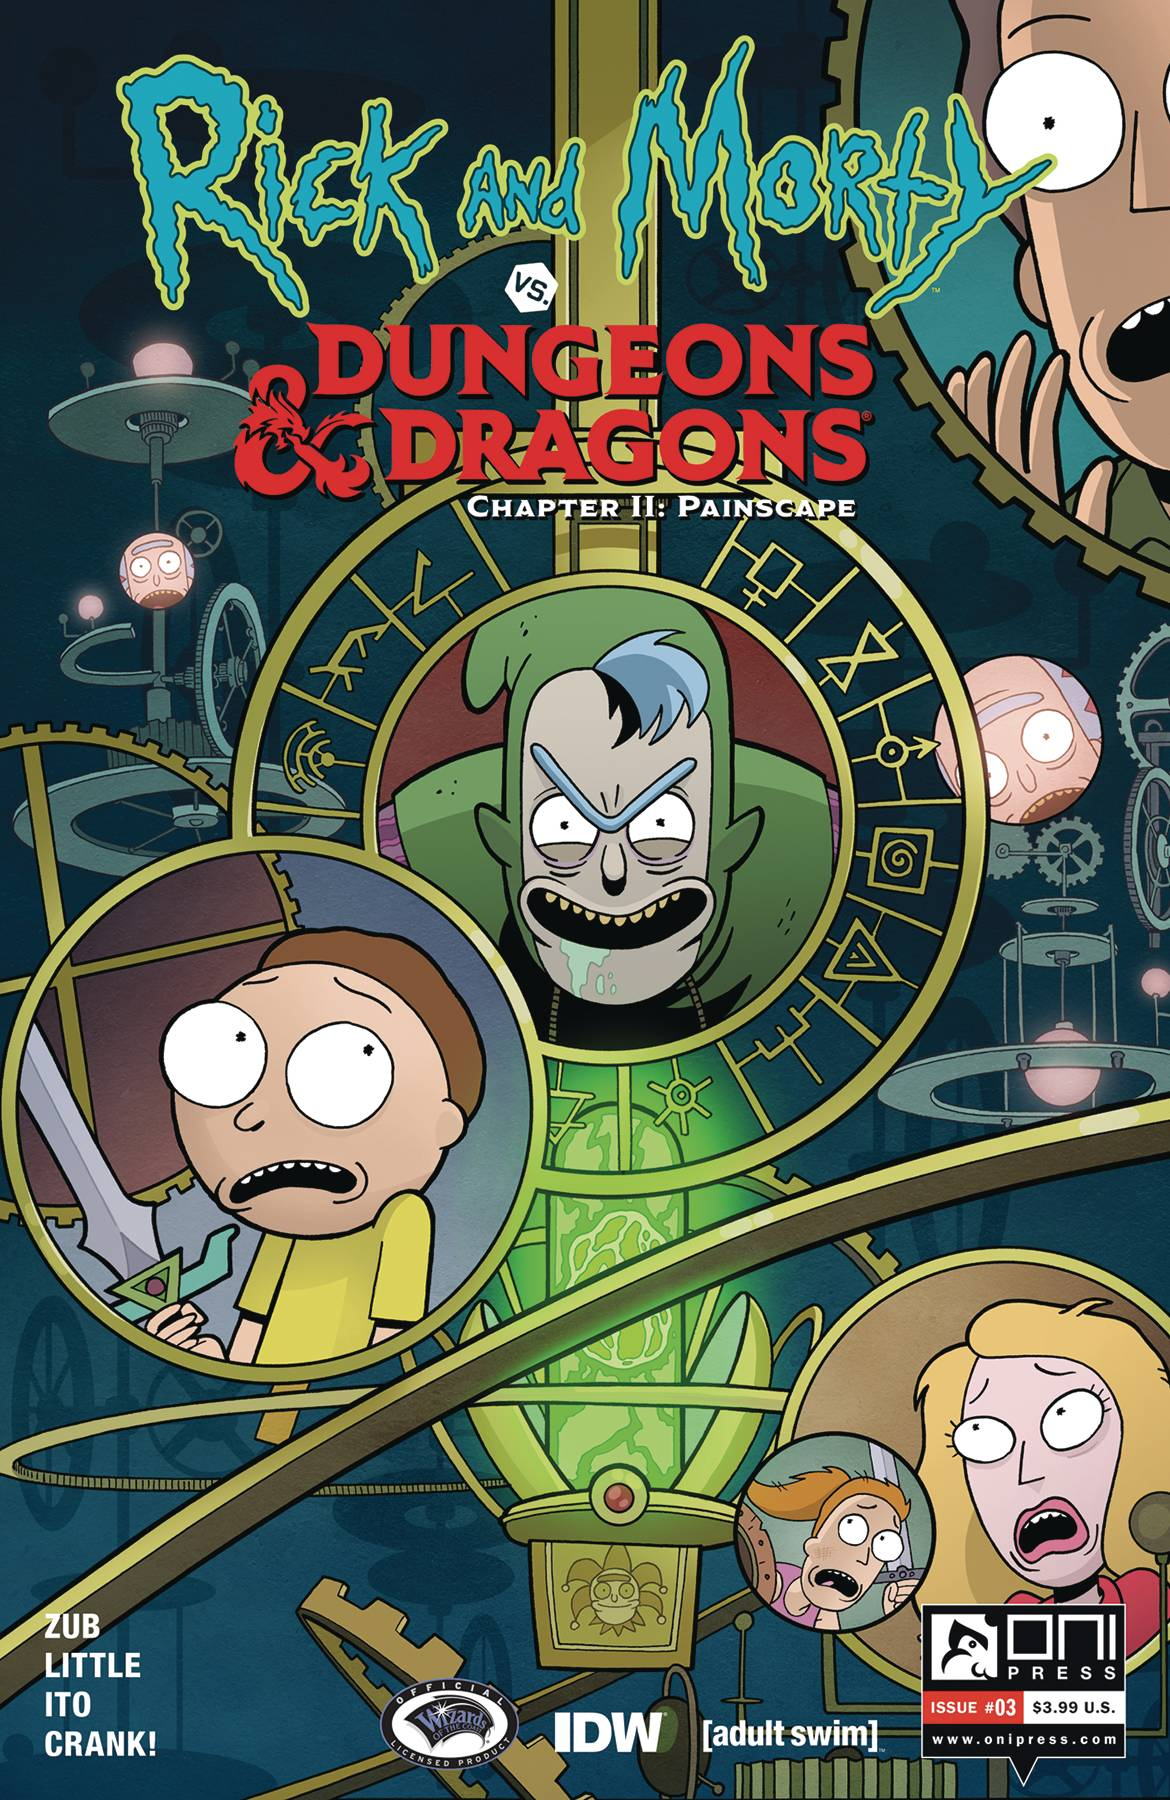 Rick and Morty vs Dungeons & Dragons II: Painscape #3 (2019)